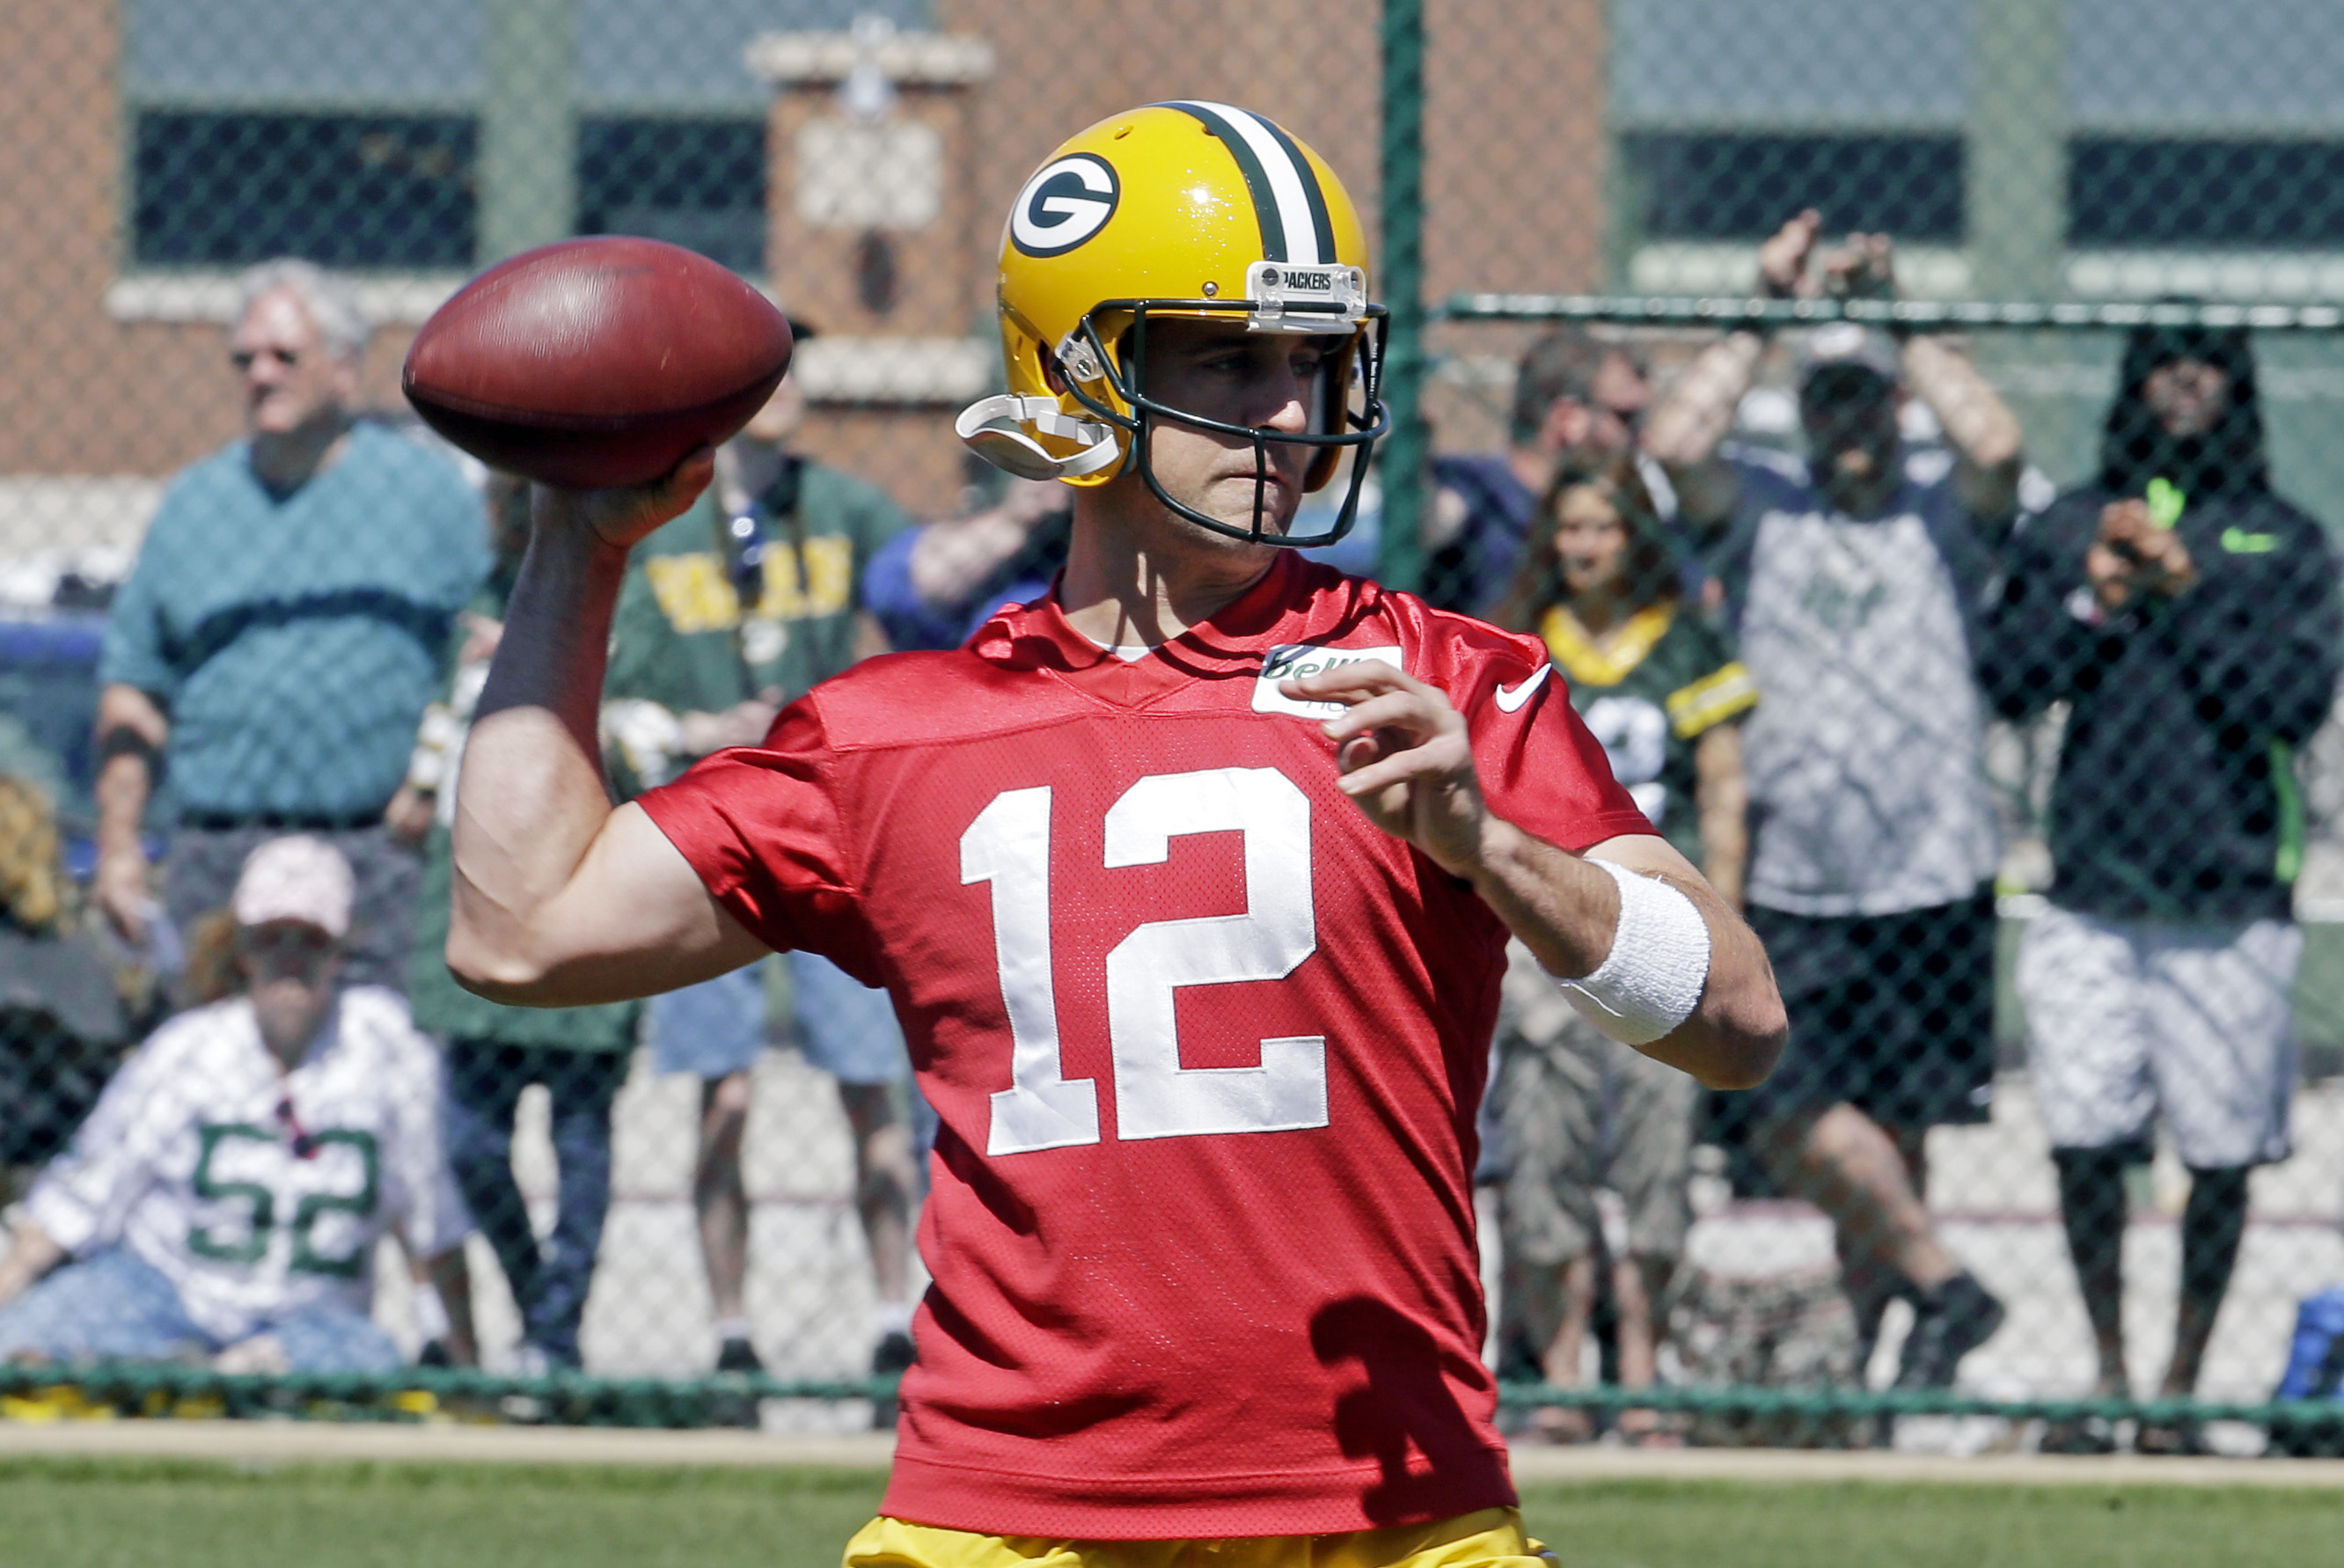 Green Bay Packers' Aaron Rodgers throws a pass during NFL football minicamp, Tuesday, June 16, 2015, in Green Bay, Wis. (AP Photo/Morry Gash)